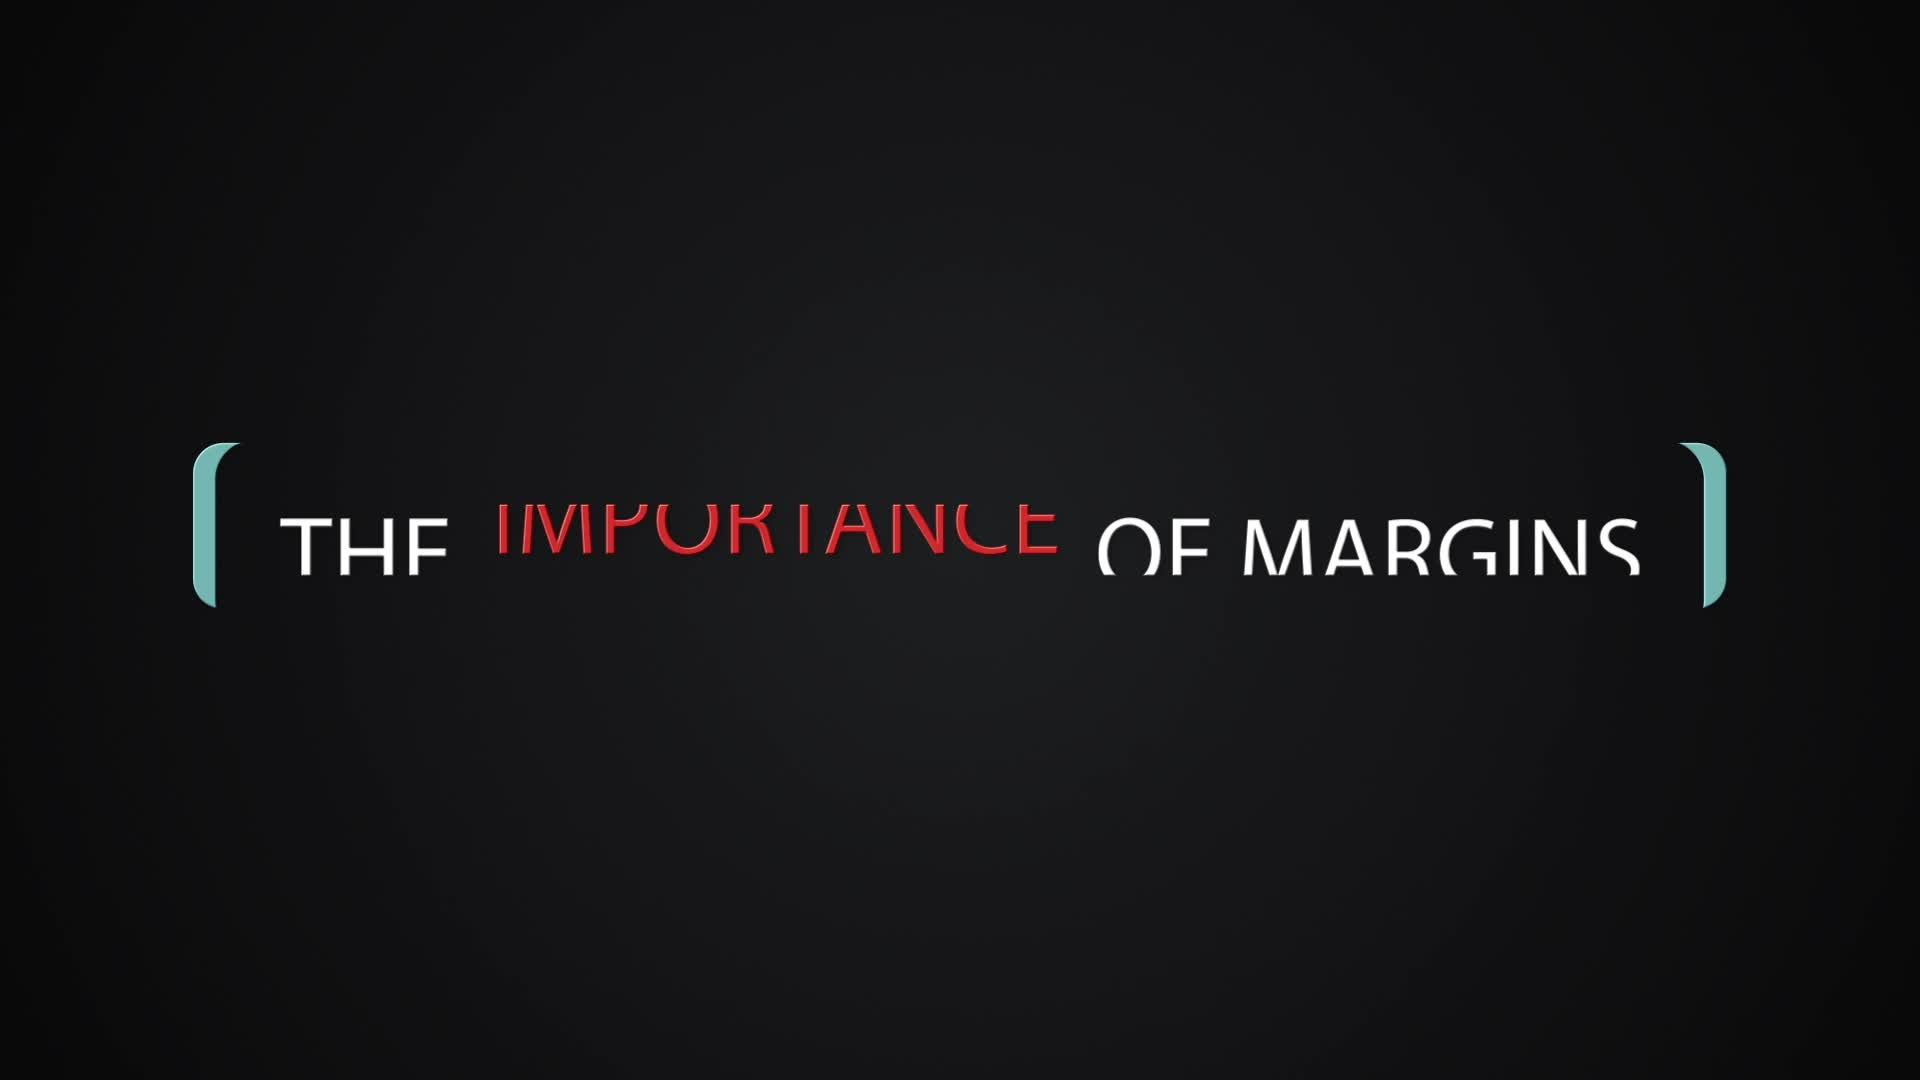 The Importance of Margins